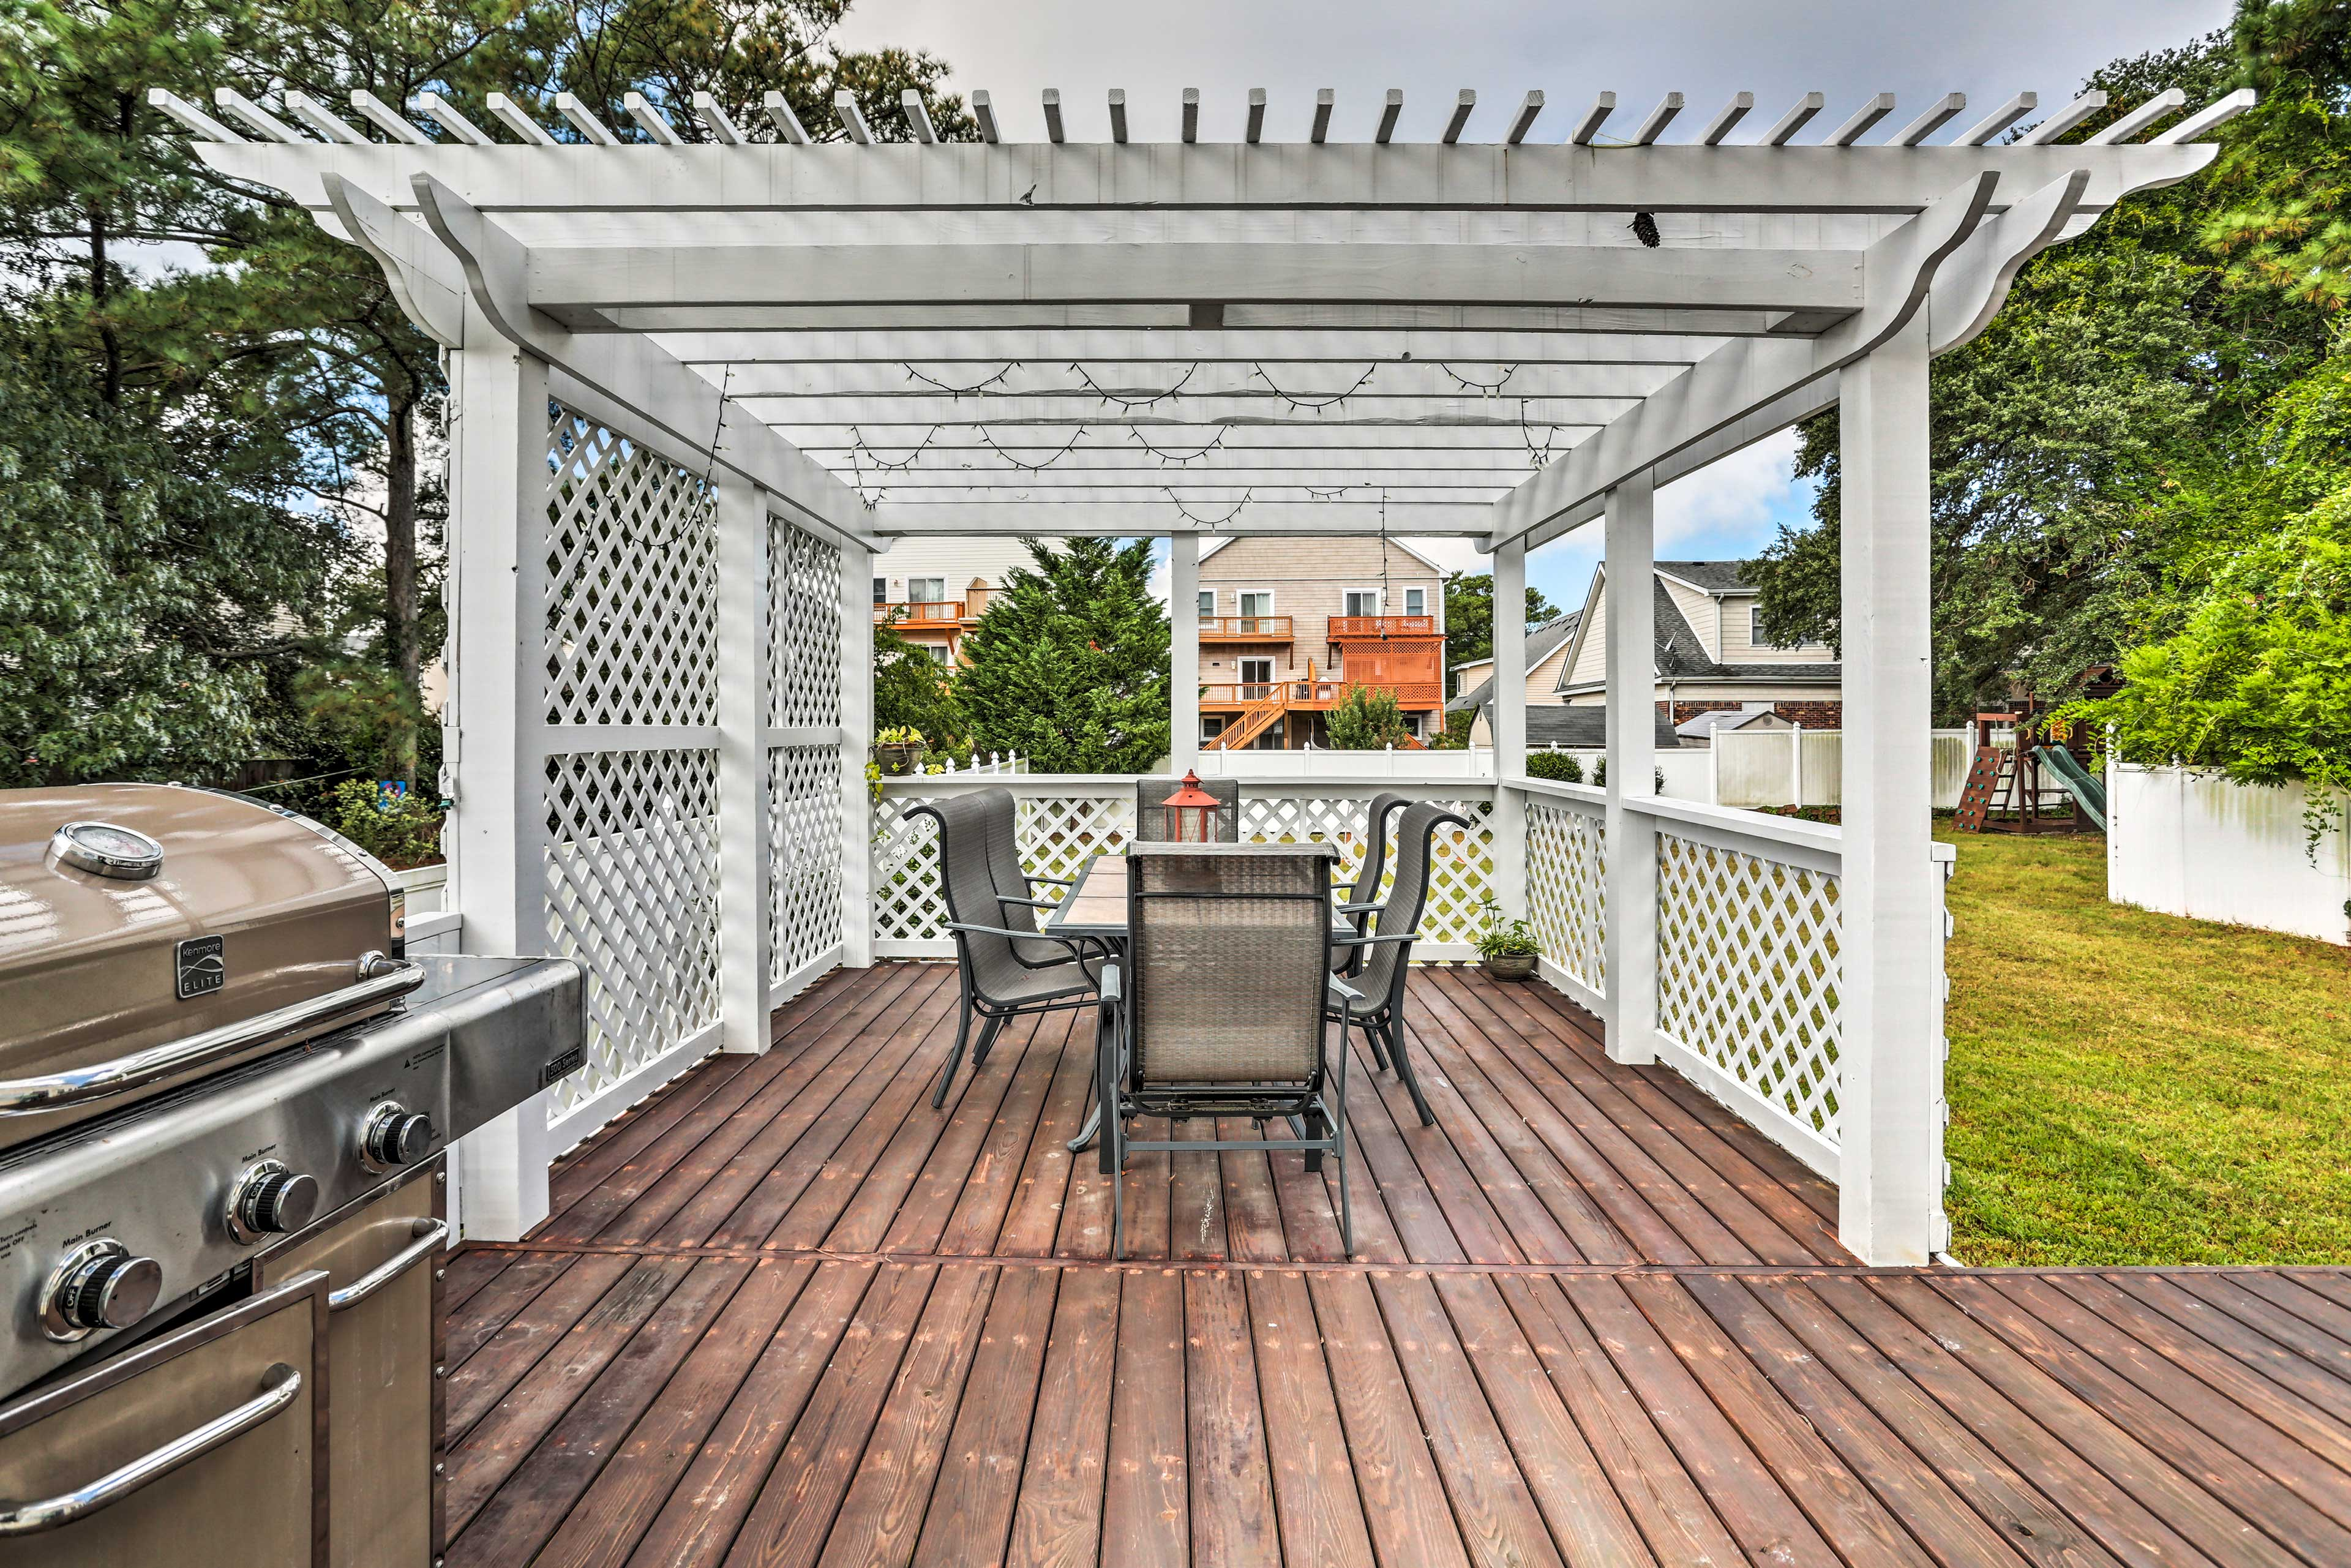 The home features incredible amenities, including a furnished porch & gas grill!